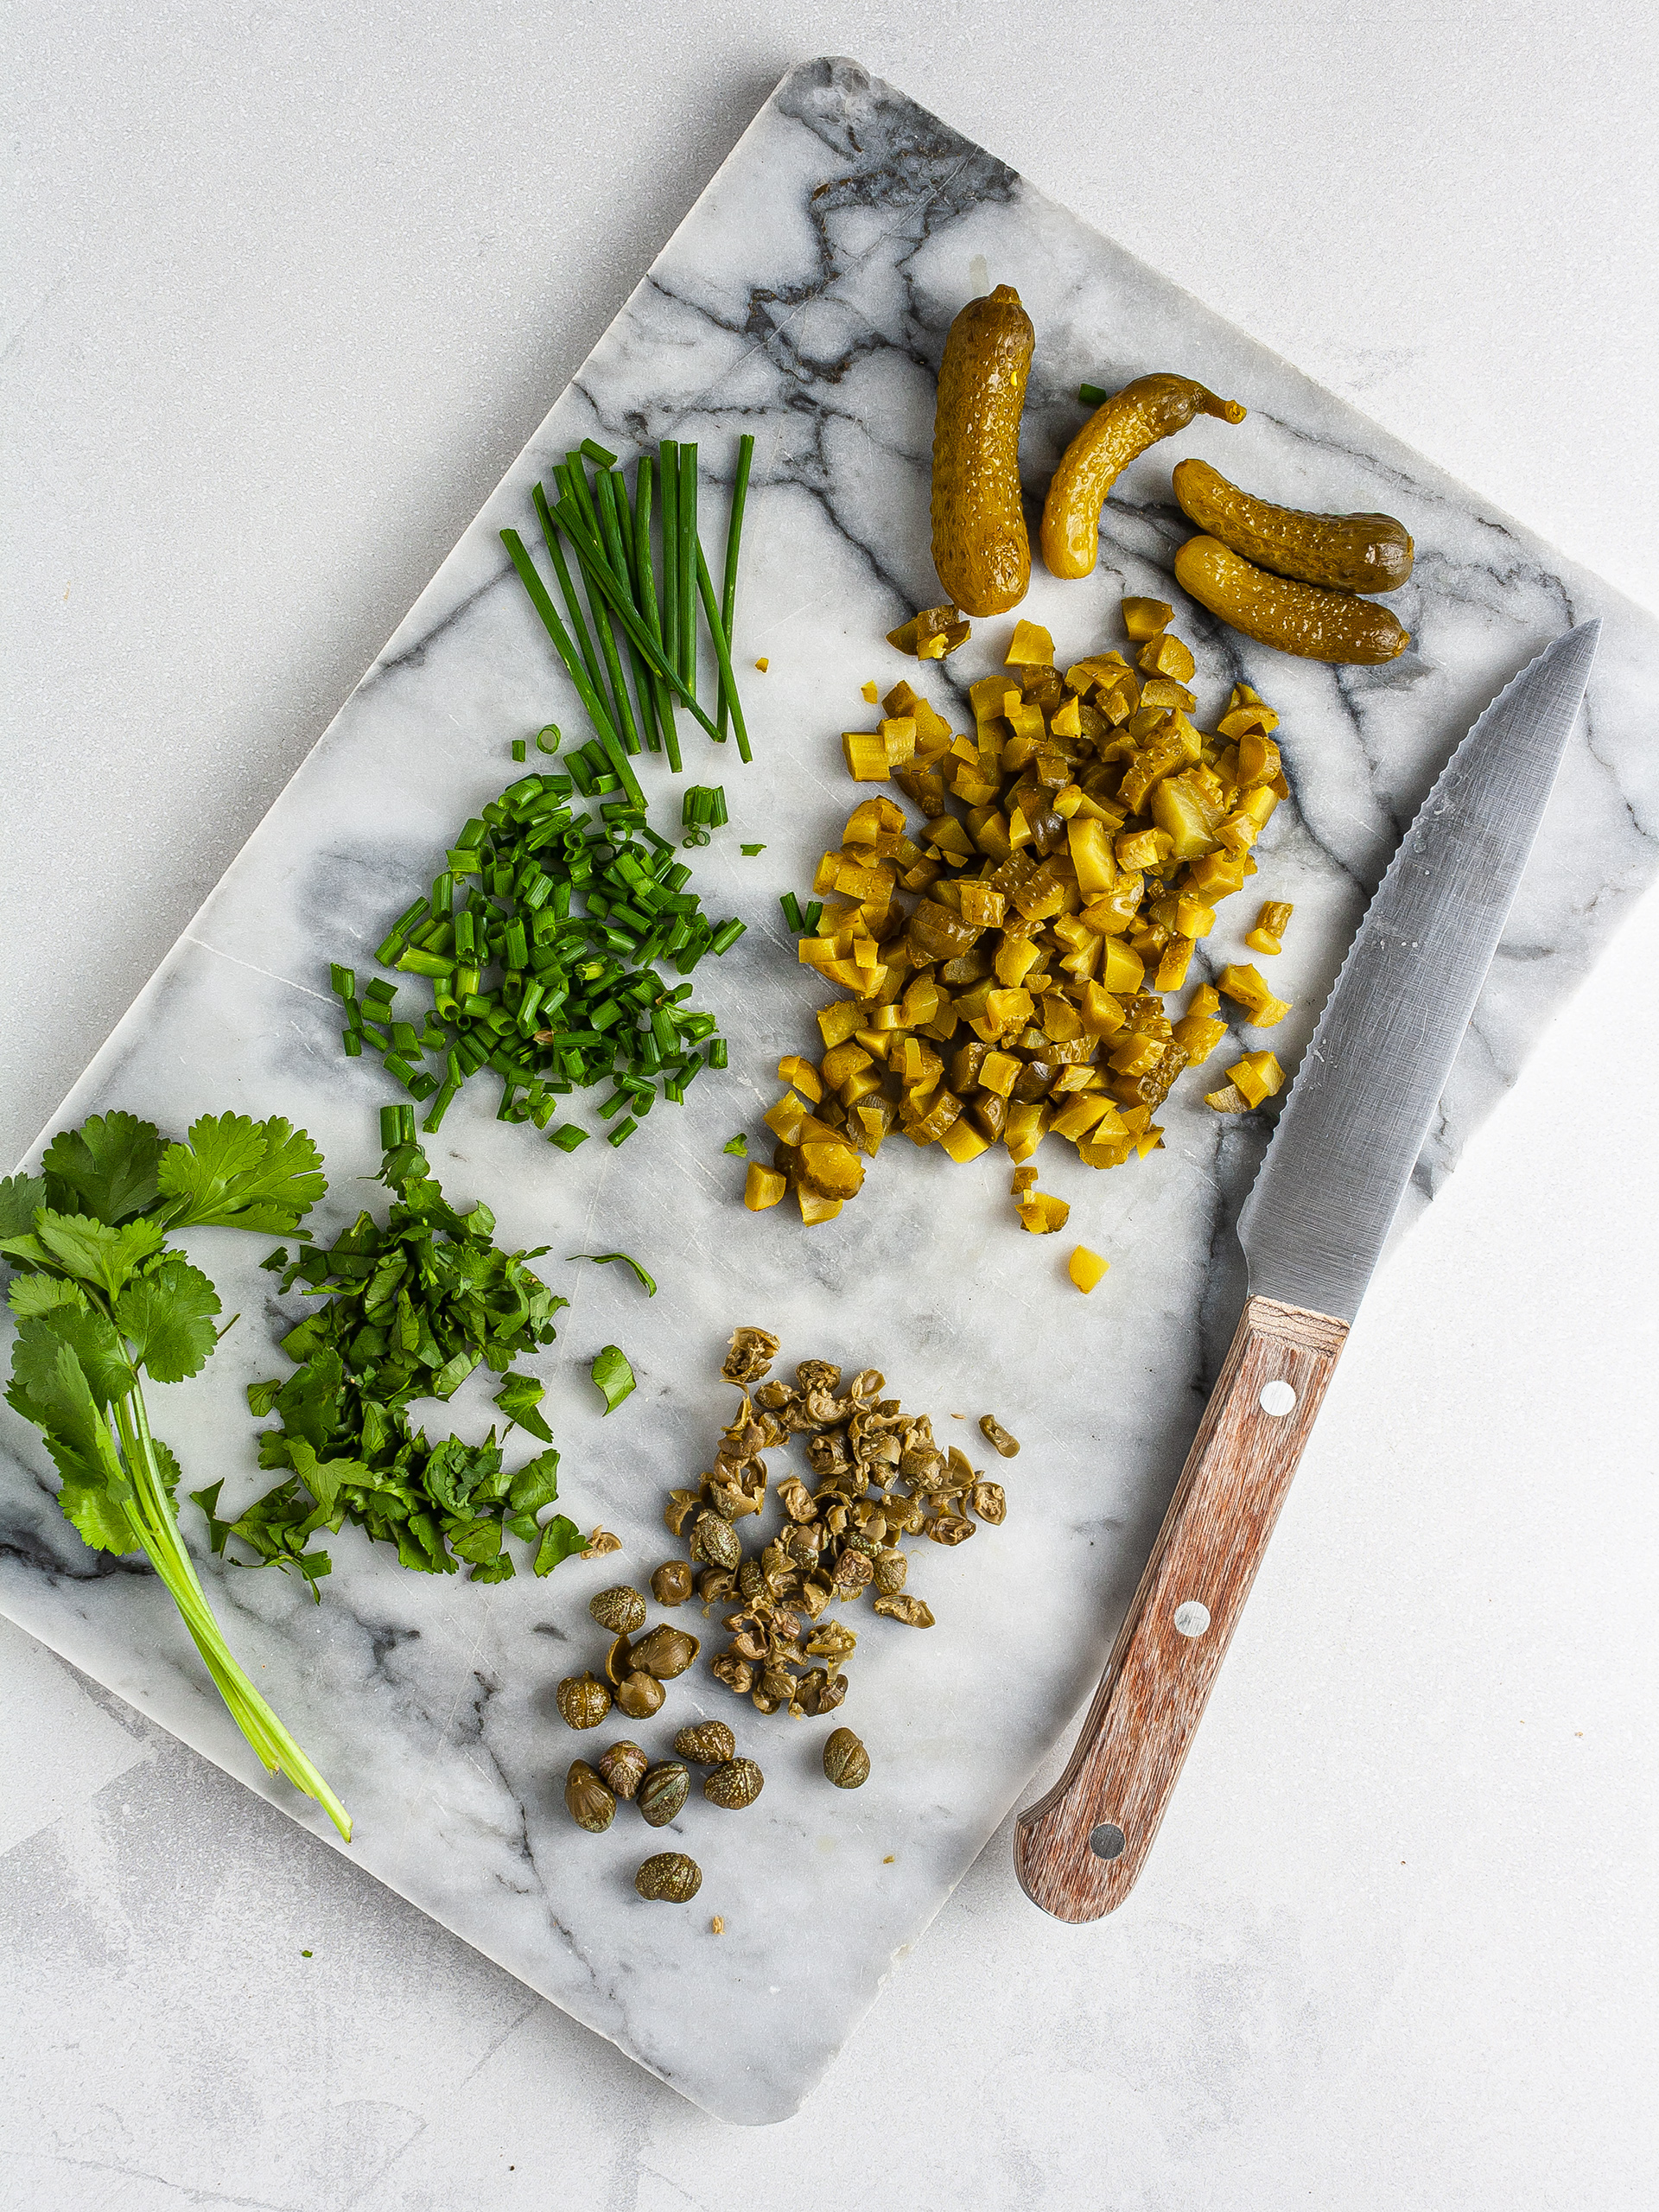 Chopped capers, gherkins and herbs